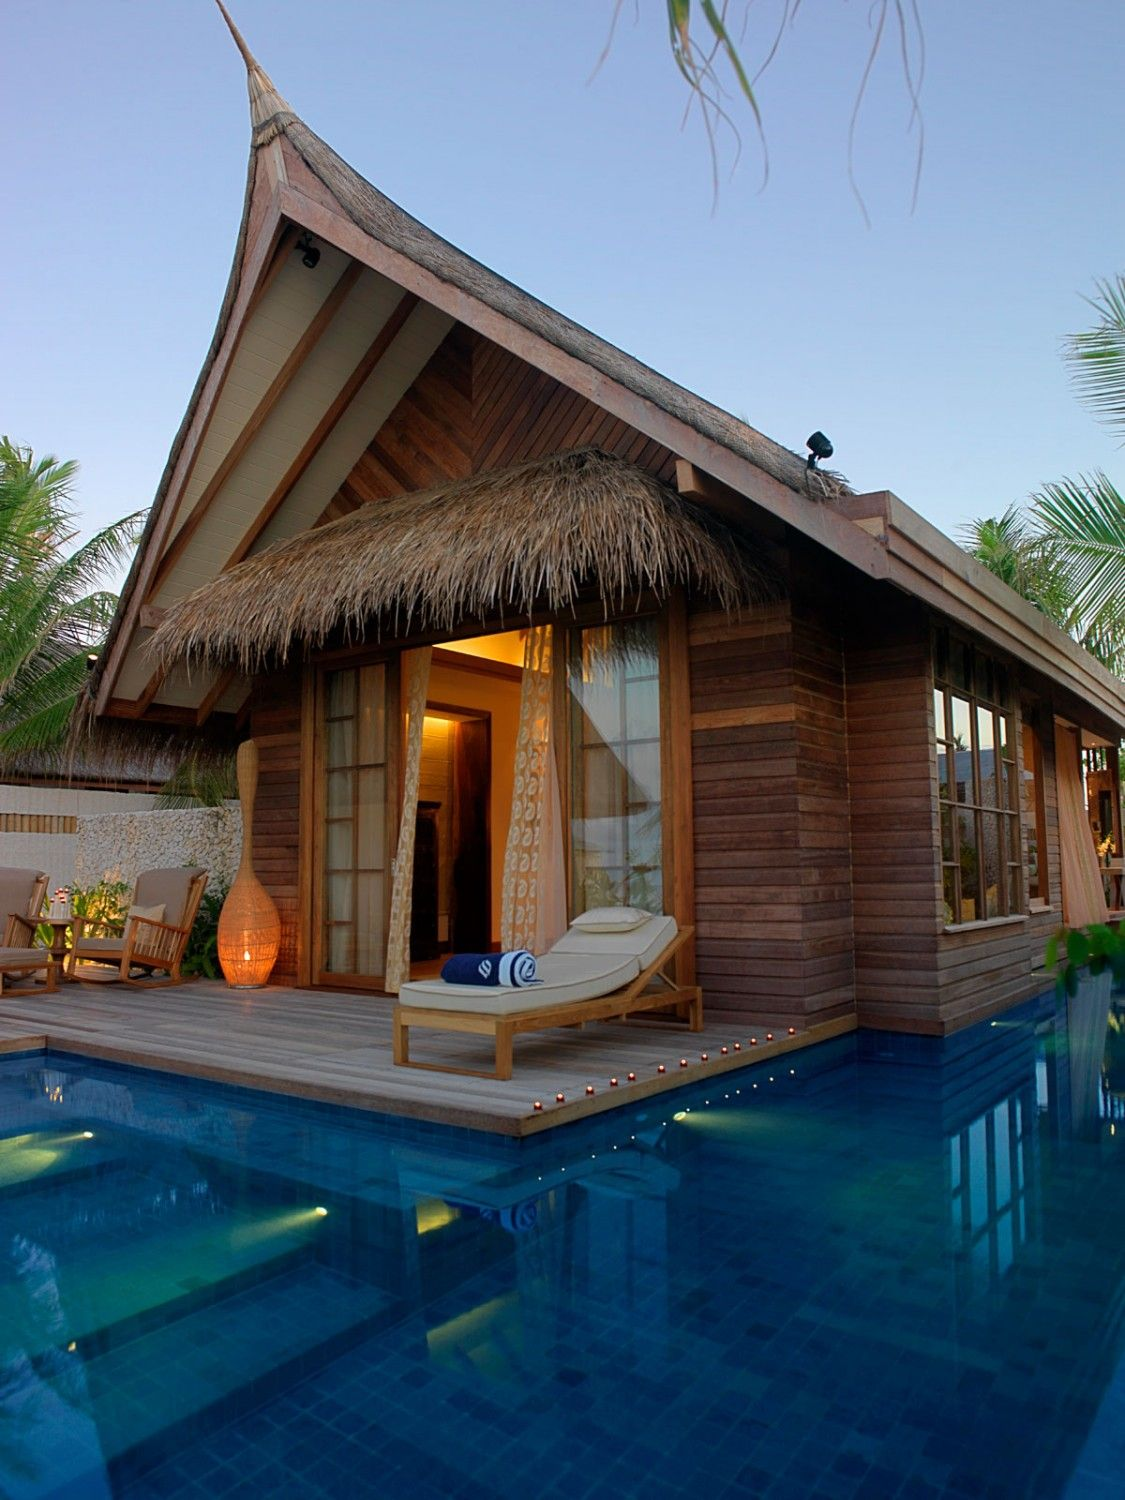 jumeirah vittaveli resort with private pool in maldives - Jumeirah Resorts Maldives